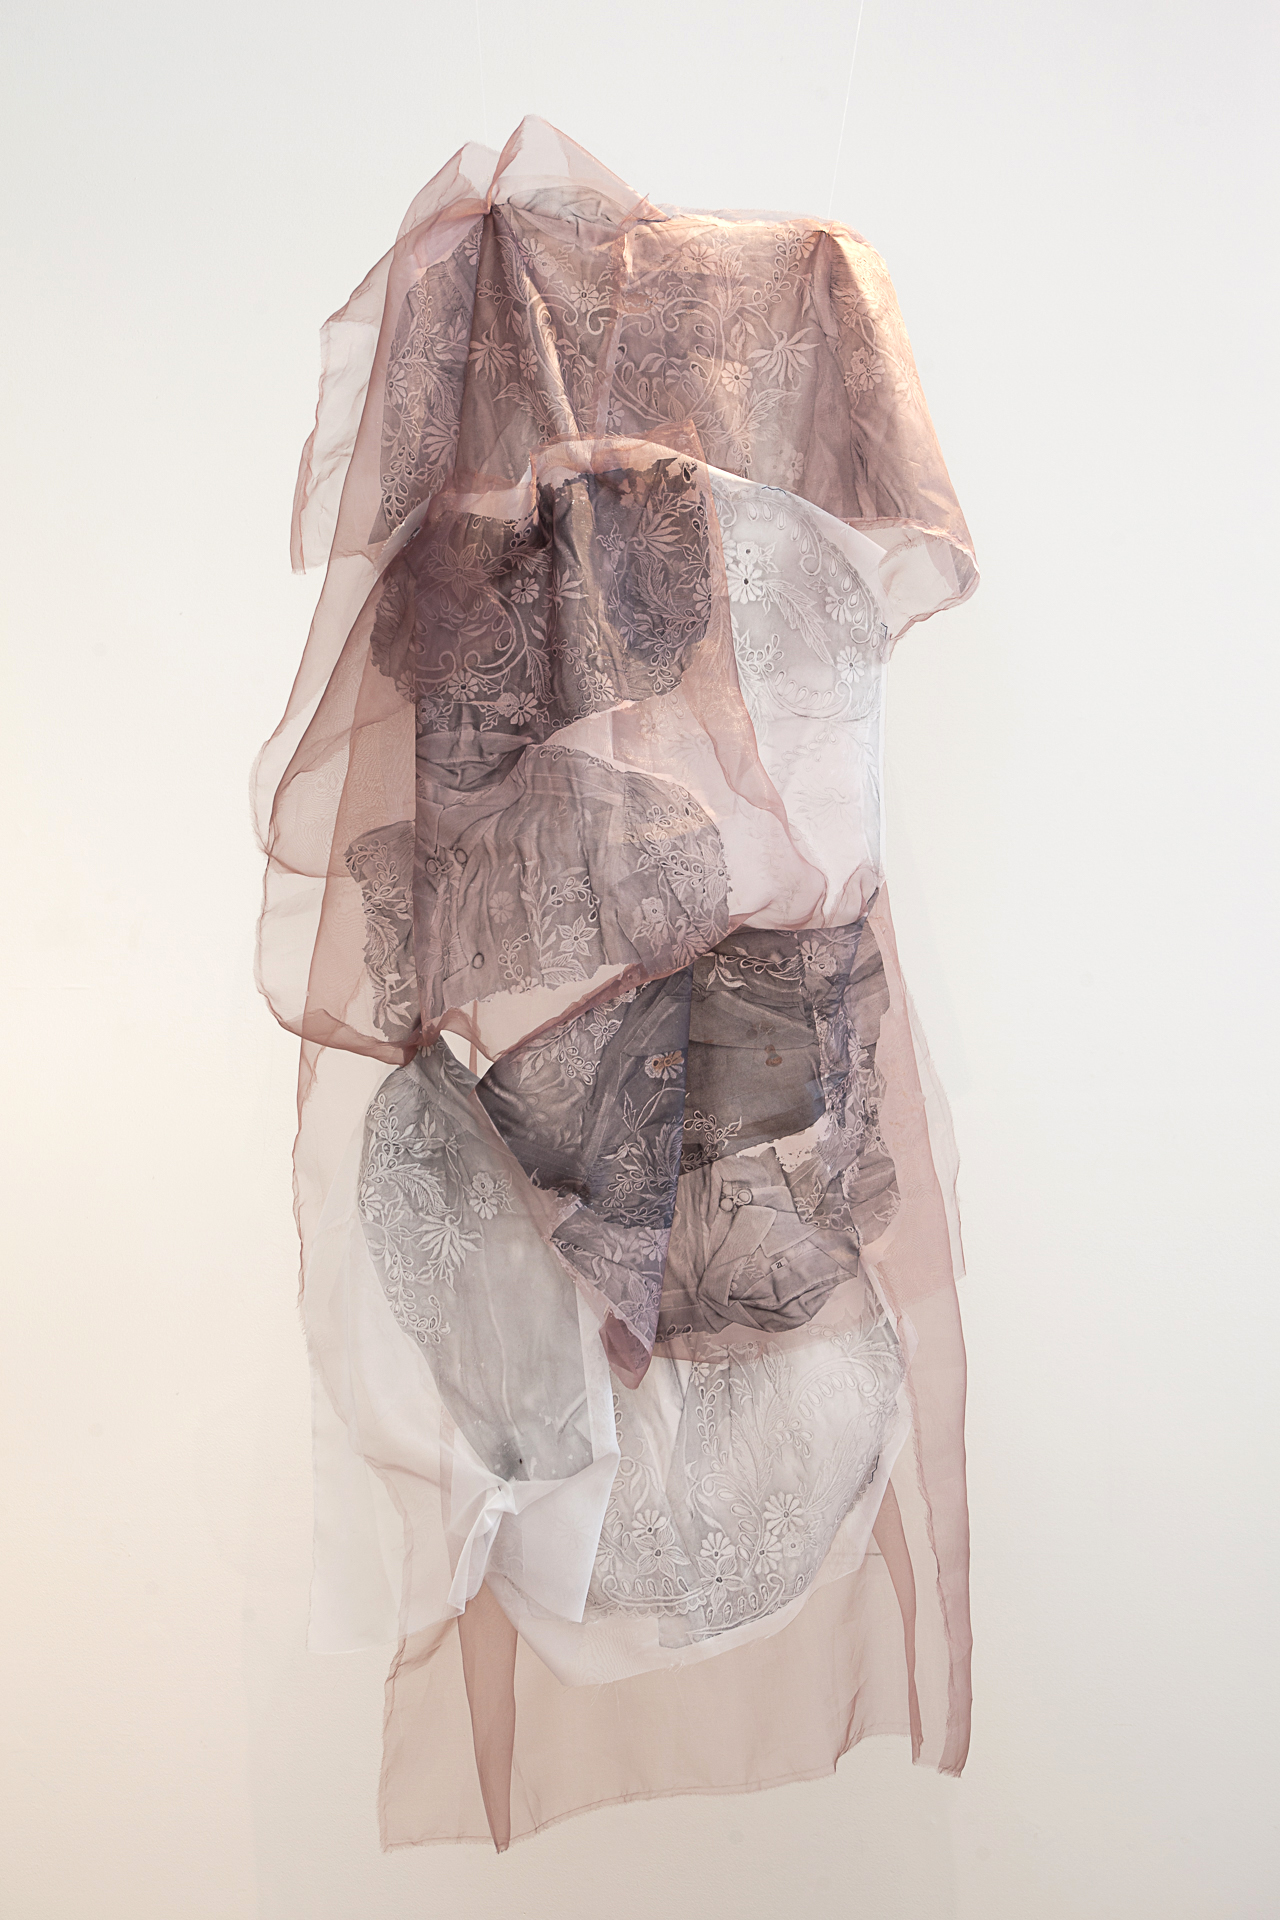 """Imahe , 2015  Image transfers on synthetic organza sewn together, approx. 60"""" x 24""""(Photo: Mido Lee)"""